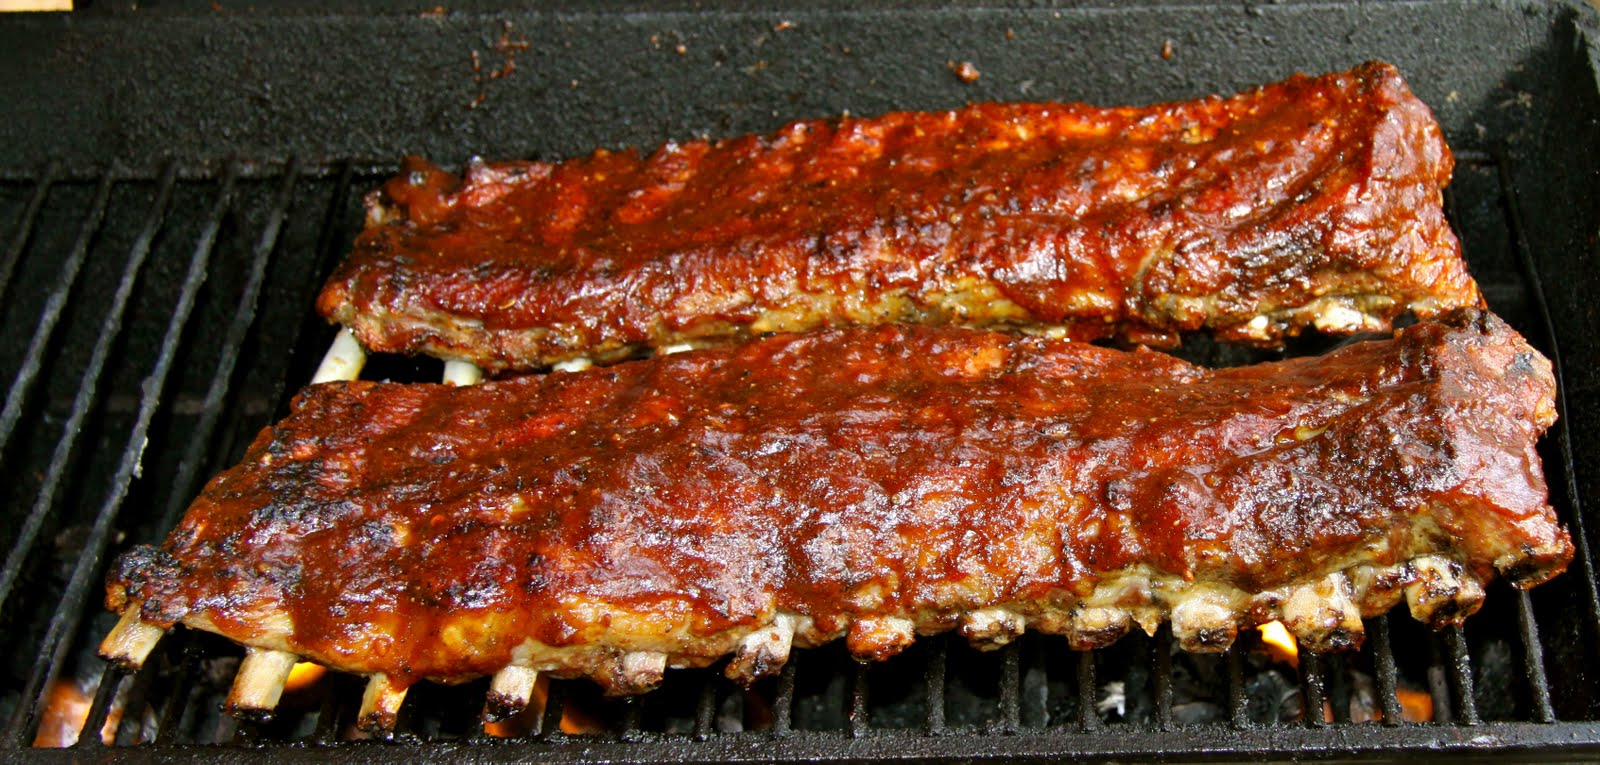 Memorial Day Weekend: What Will You Be Grilling Up